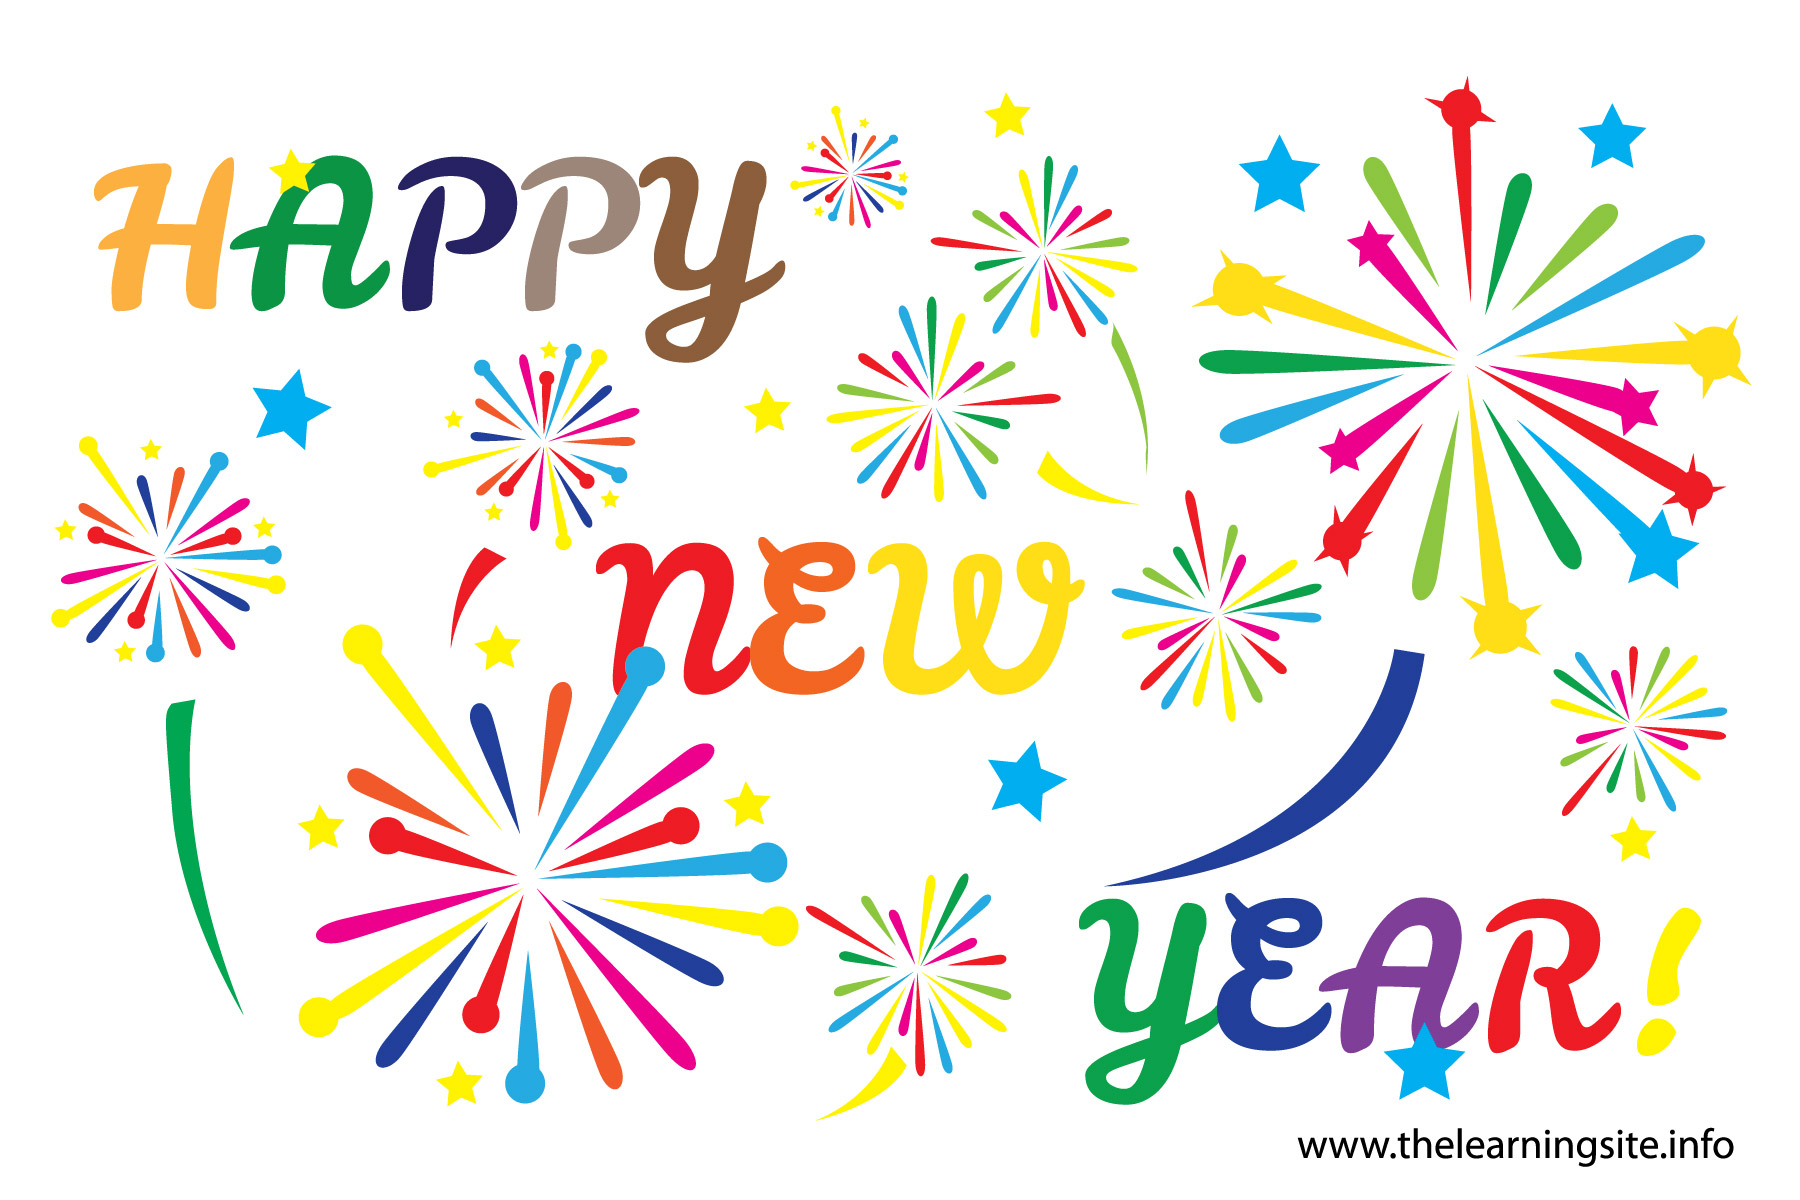 New Year clipart sparkler New Free Clipart Year cliparts